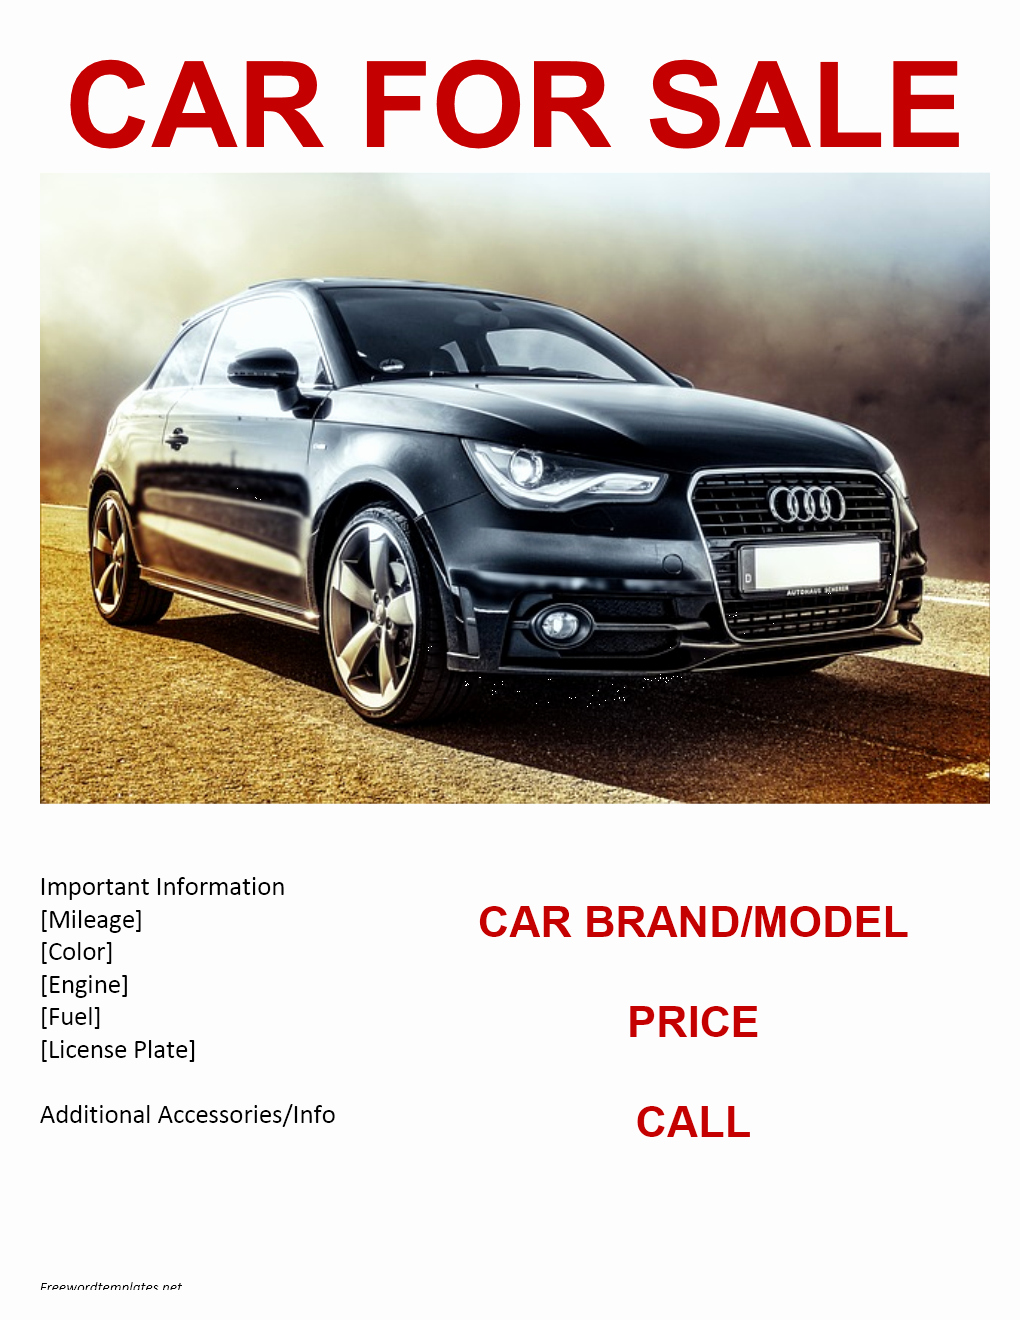 Car for Sale Template Free Luxury Car for Sale Flyer Template